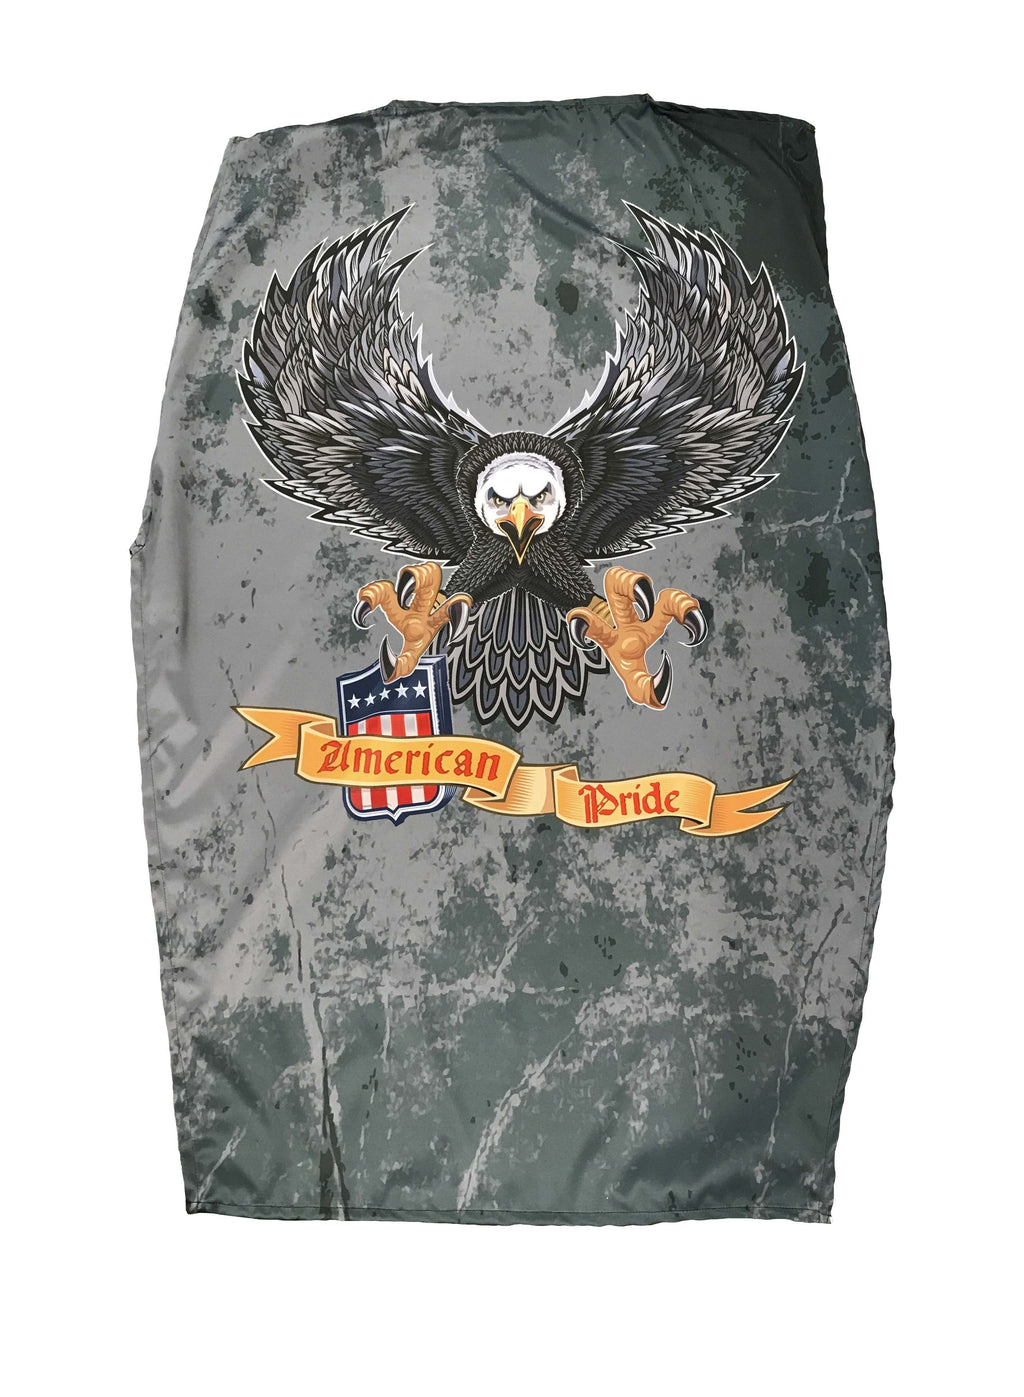 American Pride Eagle Cycle SunShade - Potter's Printing